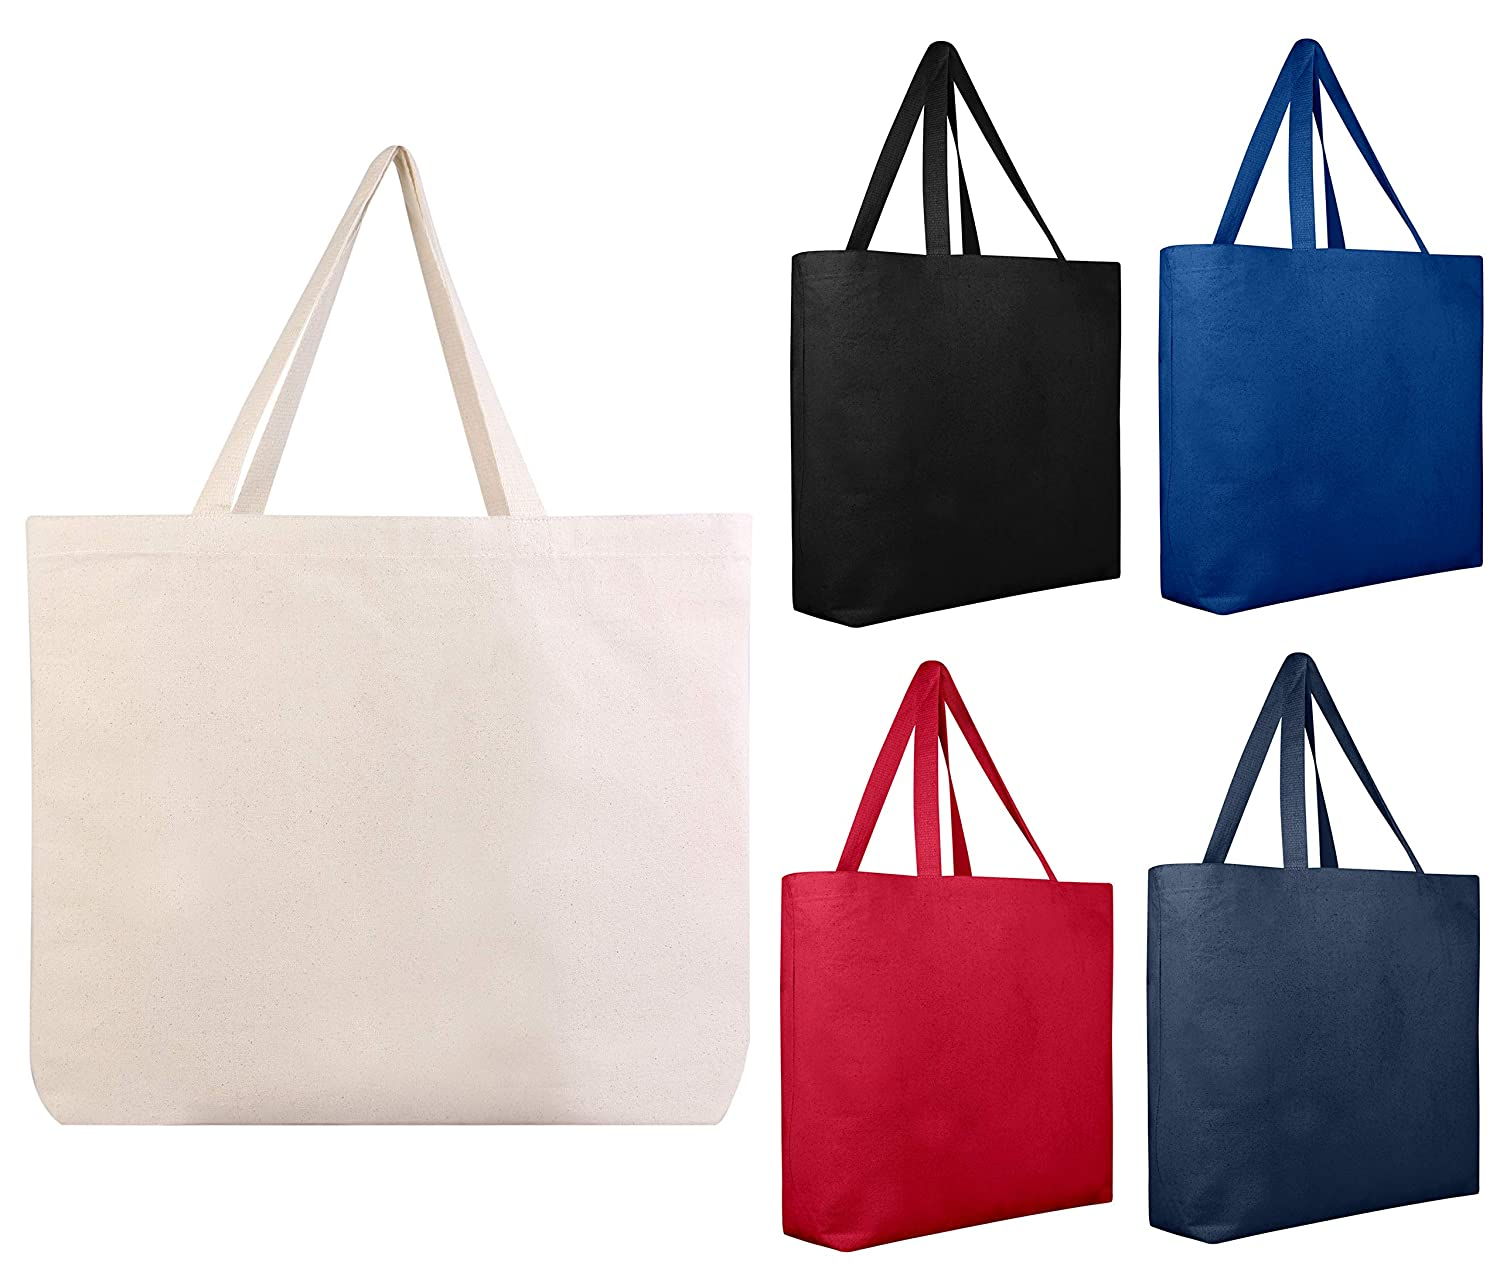 ac37a3408403 12 PACK Large Heavy Canvas Beach Tote Bag Boat Bag - Canvas Deluxe Tote  Bags BULK Wholesale tote bags Canvas bags Lot Cheap Tote Bags Customizable  ...